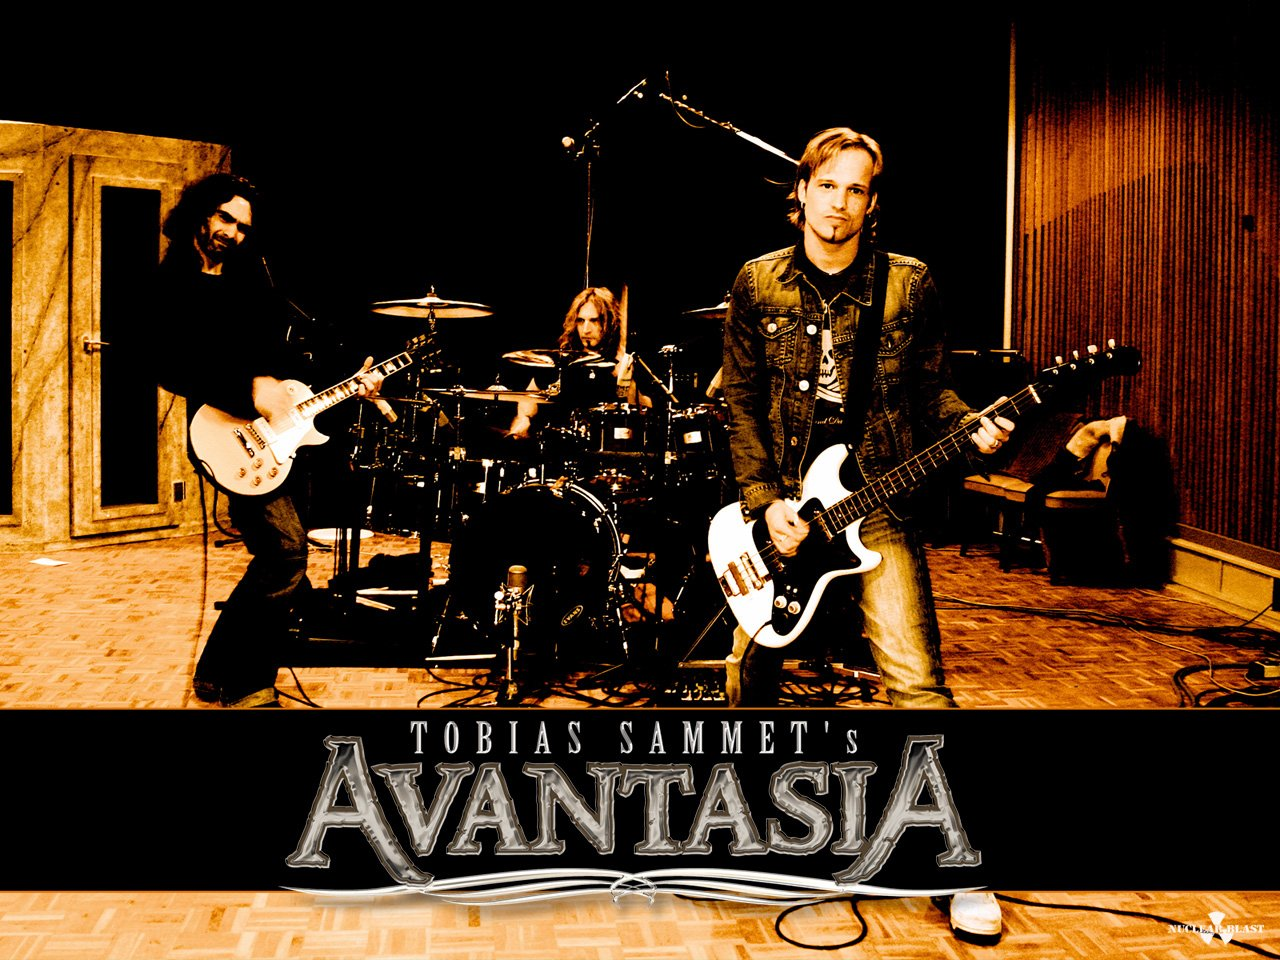 AVANTASIA - THE SCARECROW LYRICS